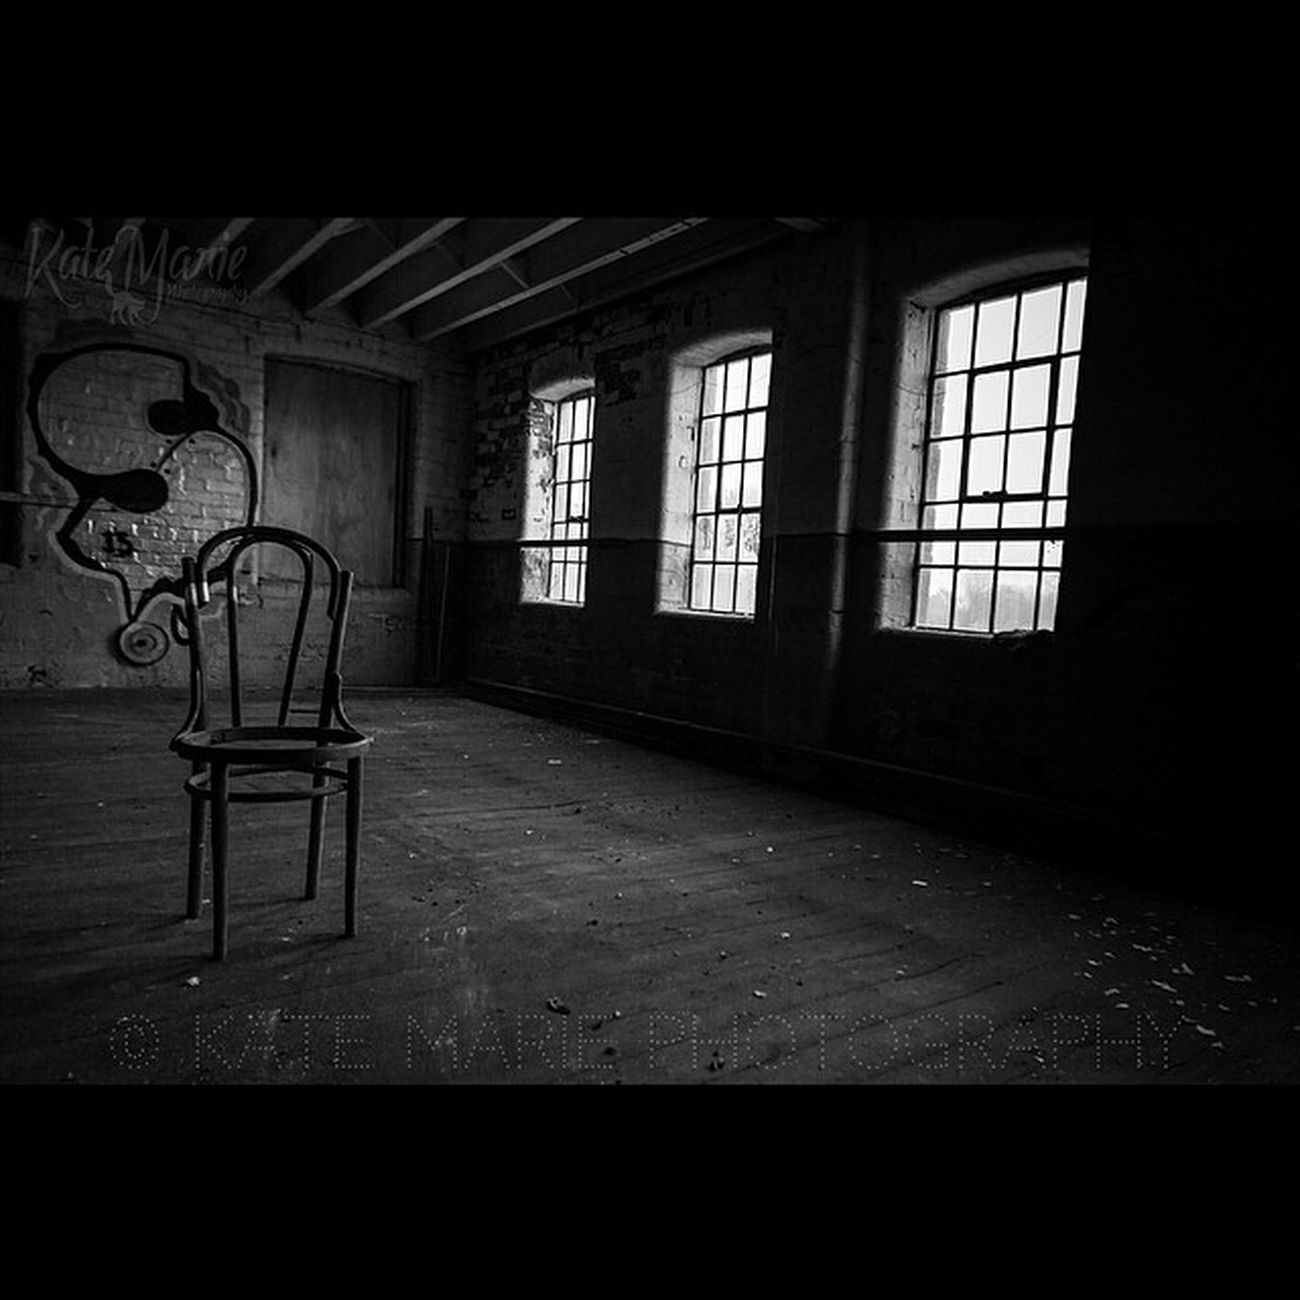 © Kate Marie Photography UK Katemariephotographyuk K8marieuk Urbex Decay Hermitagemill Mansfield Old Chair Canoneos700d Monochrome Detail Blacknwhite Tamron10 -24 Photo365 Photogeeks Photooftheday